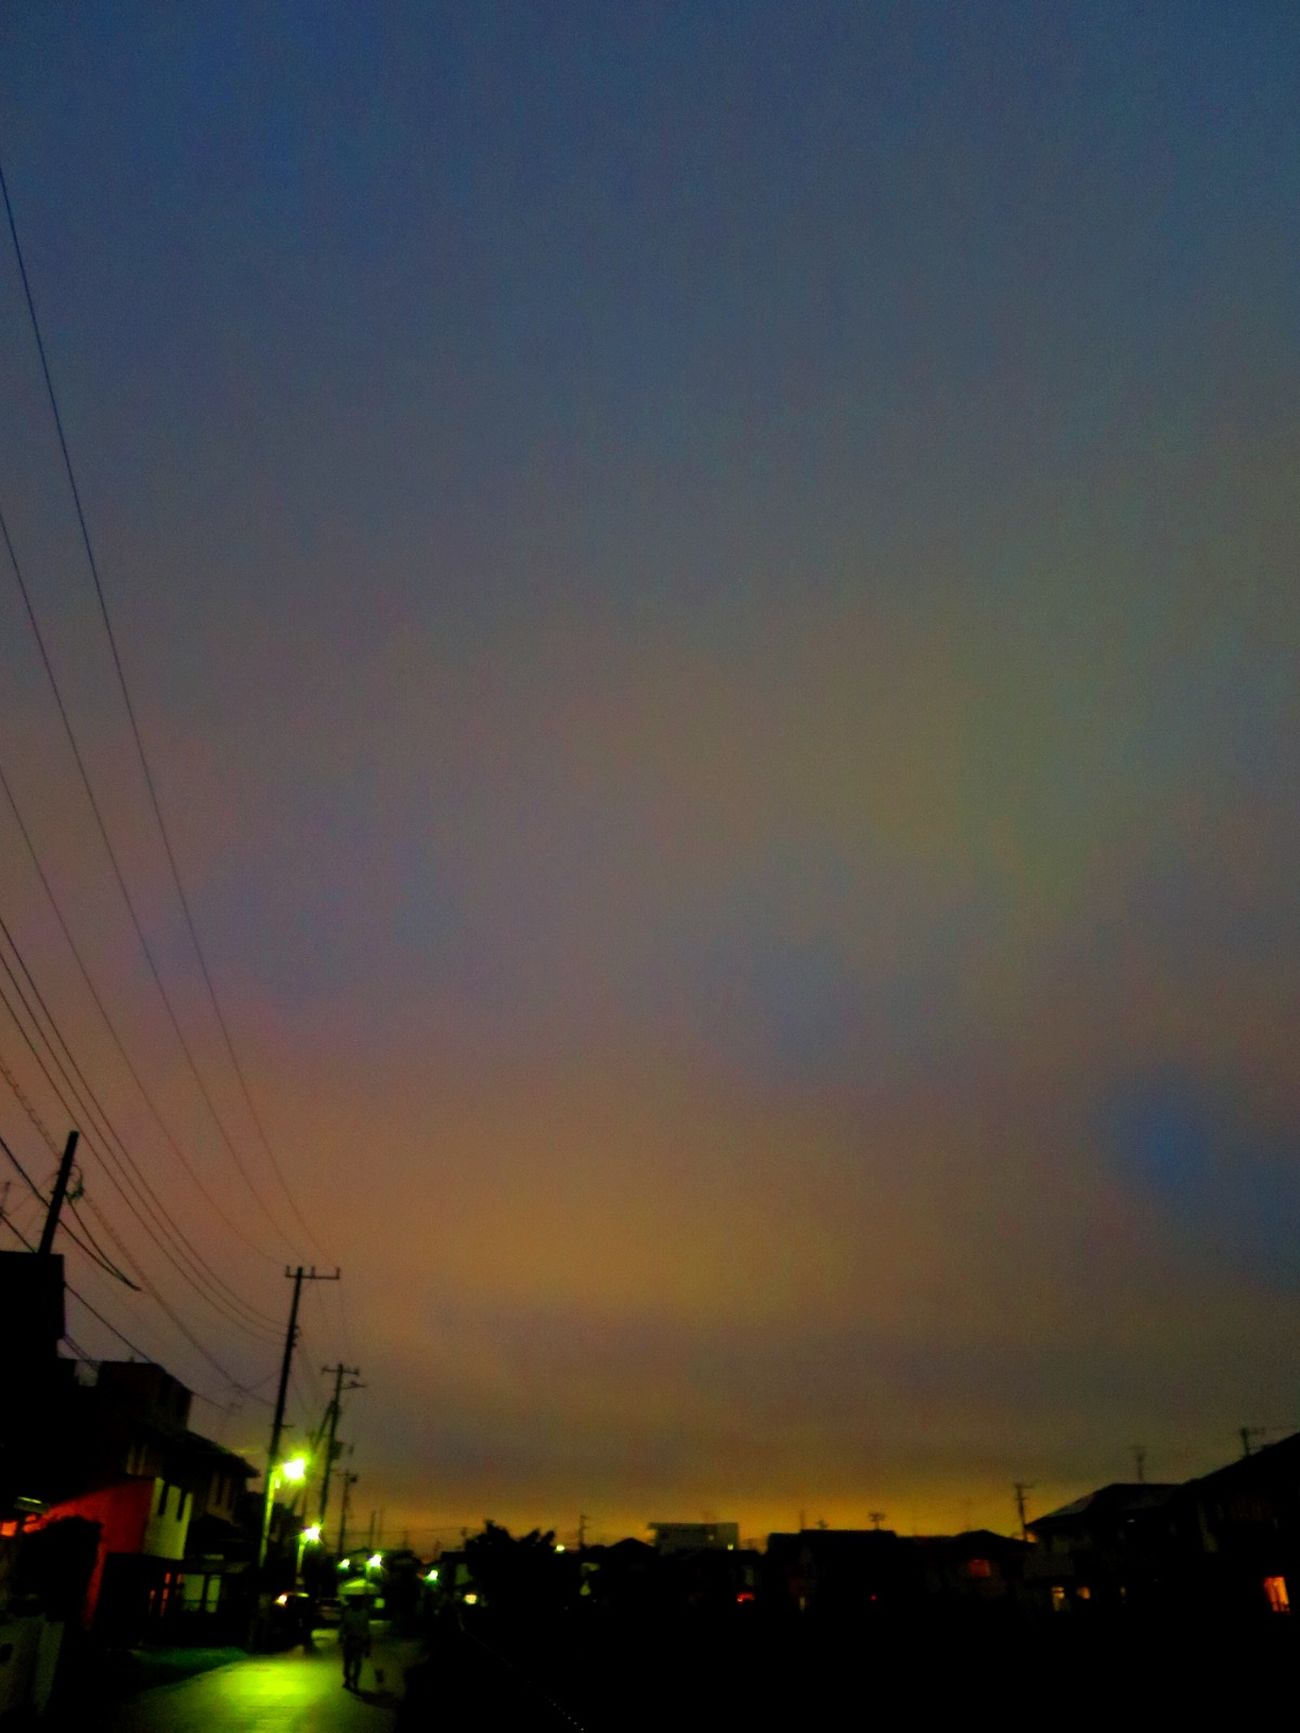 お疲れ様でした。 Sun Set Canon S120 Twilight Rain Day